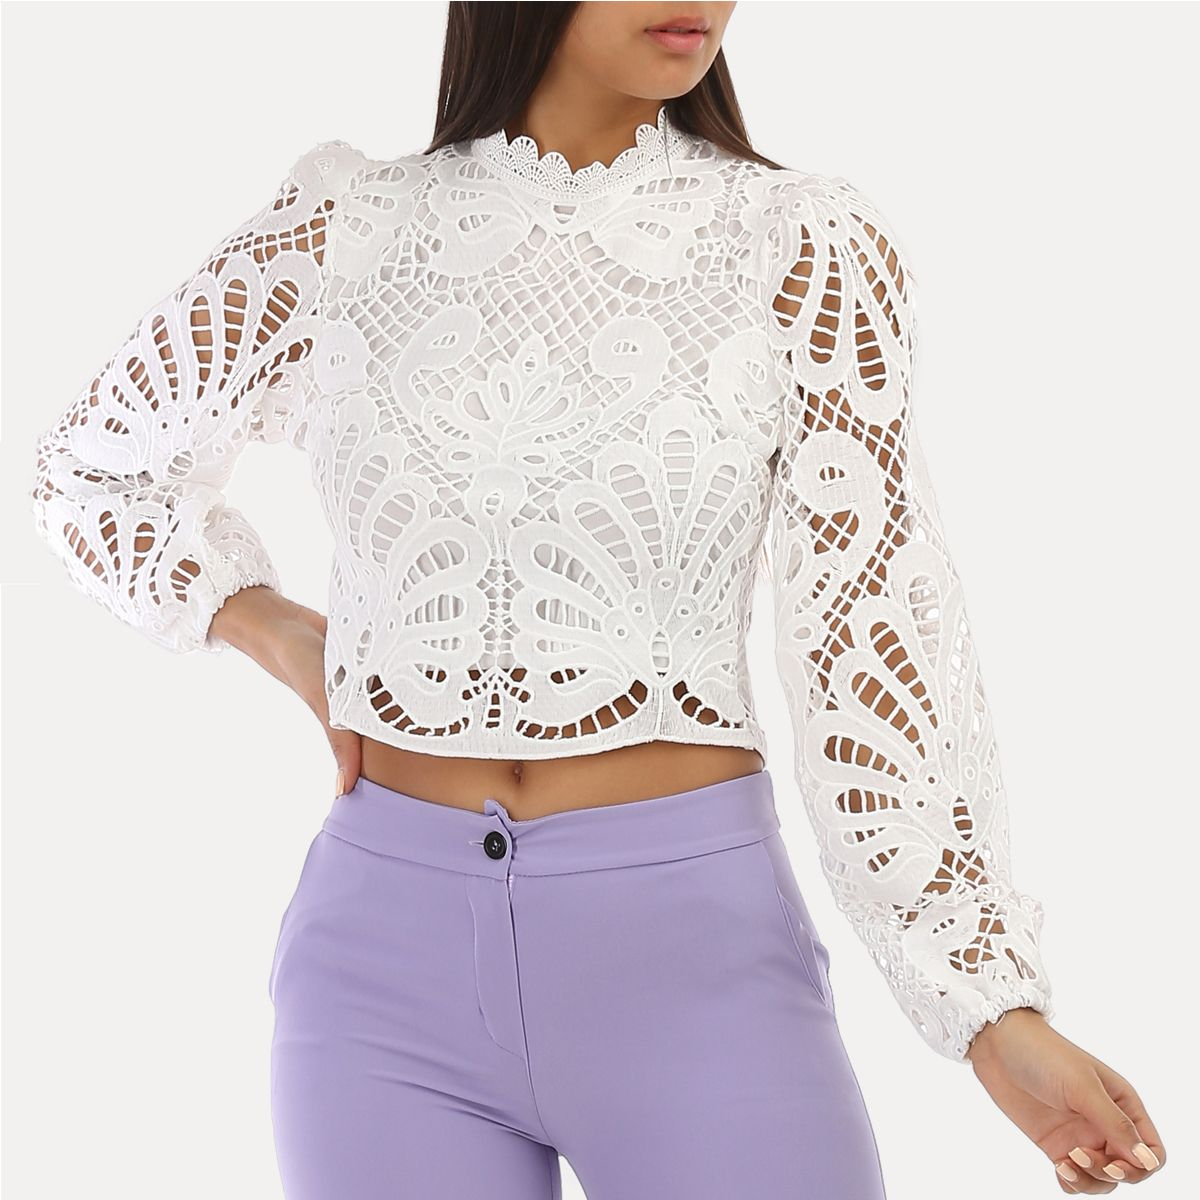 Crop top blanc brodé